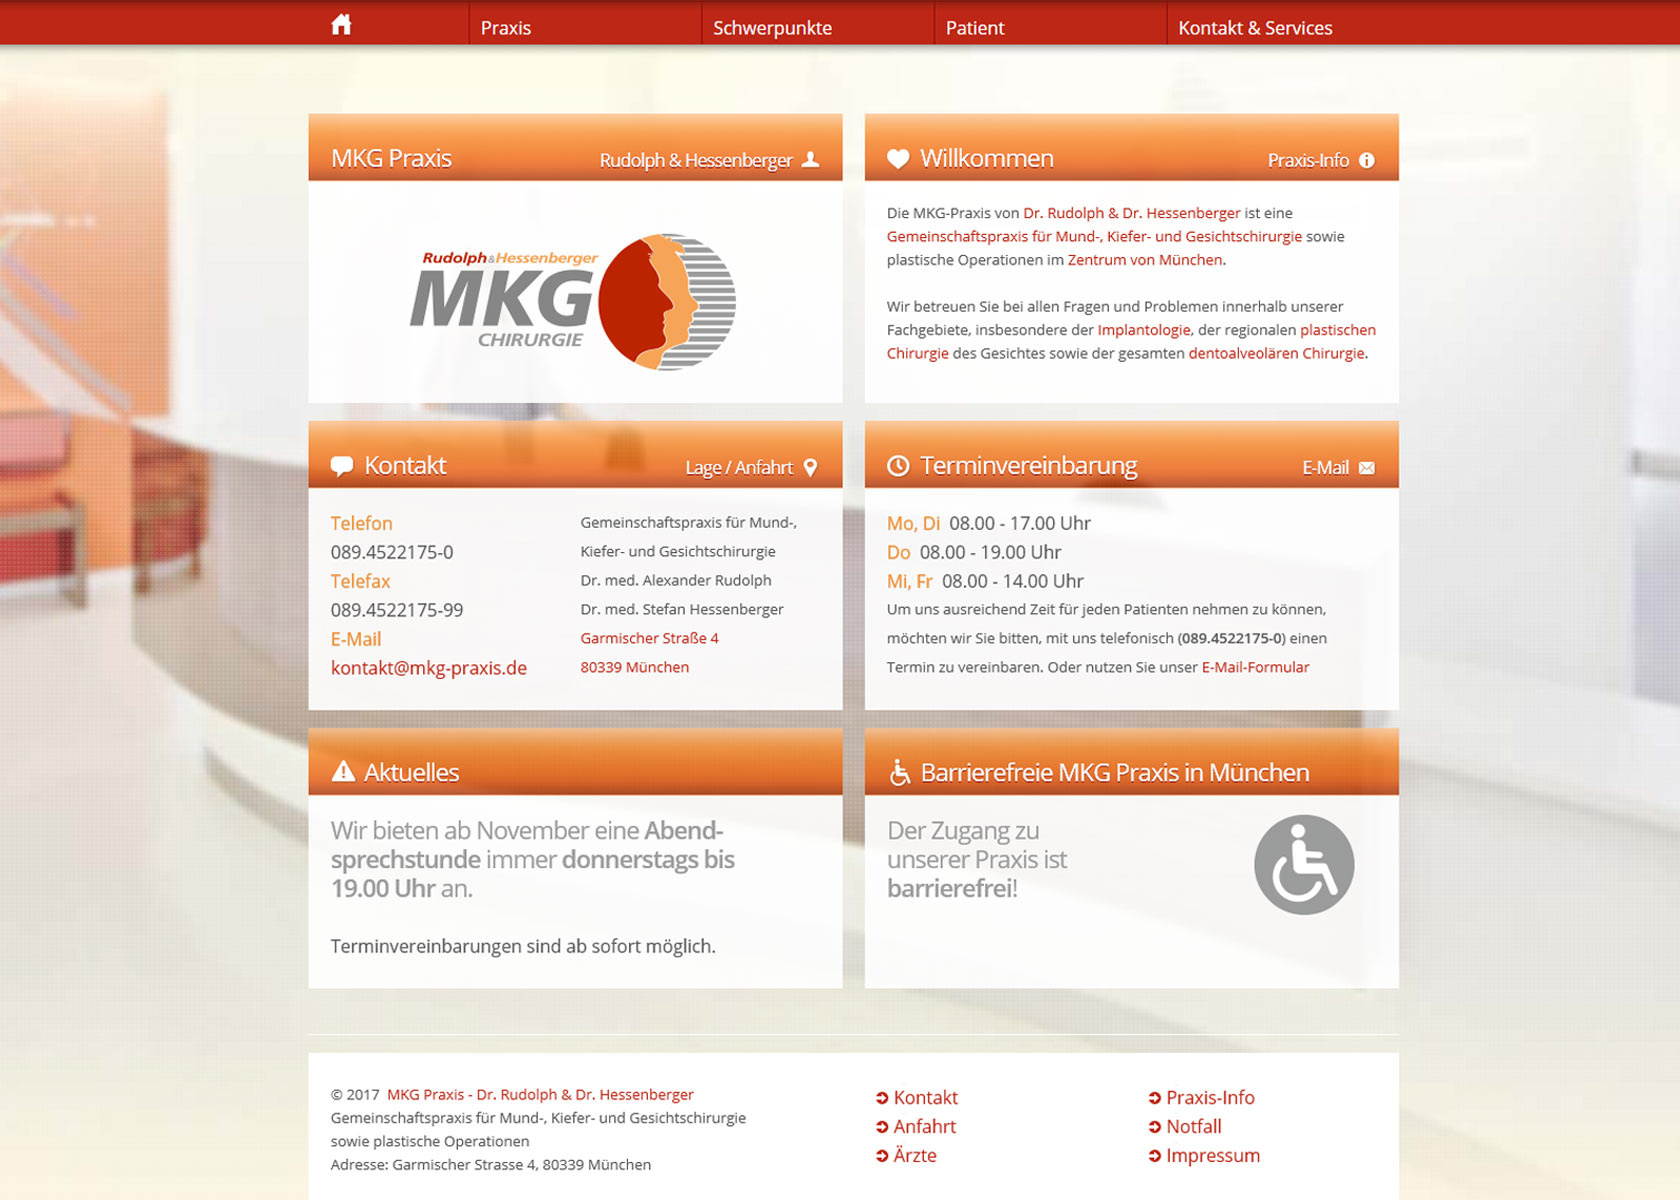 MKG Praxis Website (Screenshot)